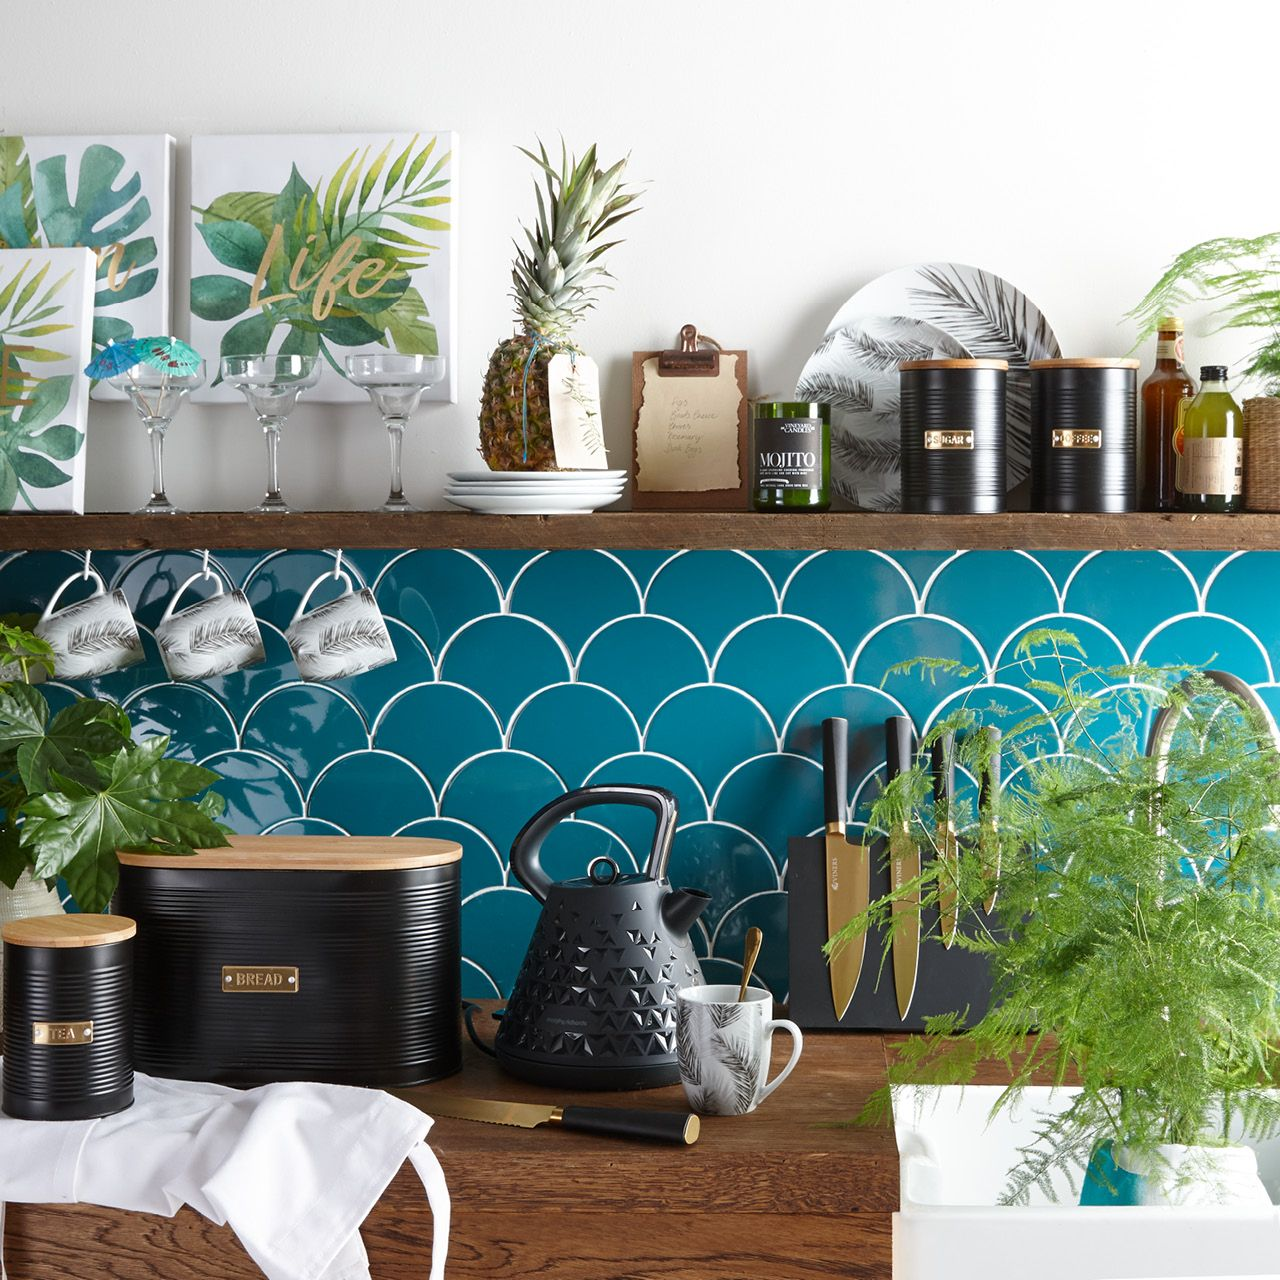 Bring the outdoors indoors with little tropical forest touches like ...